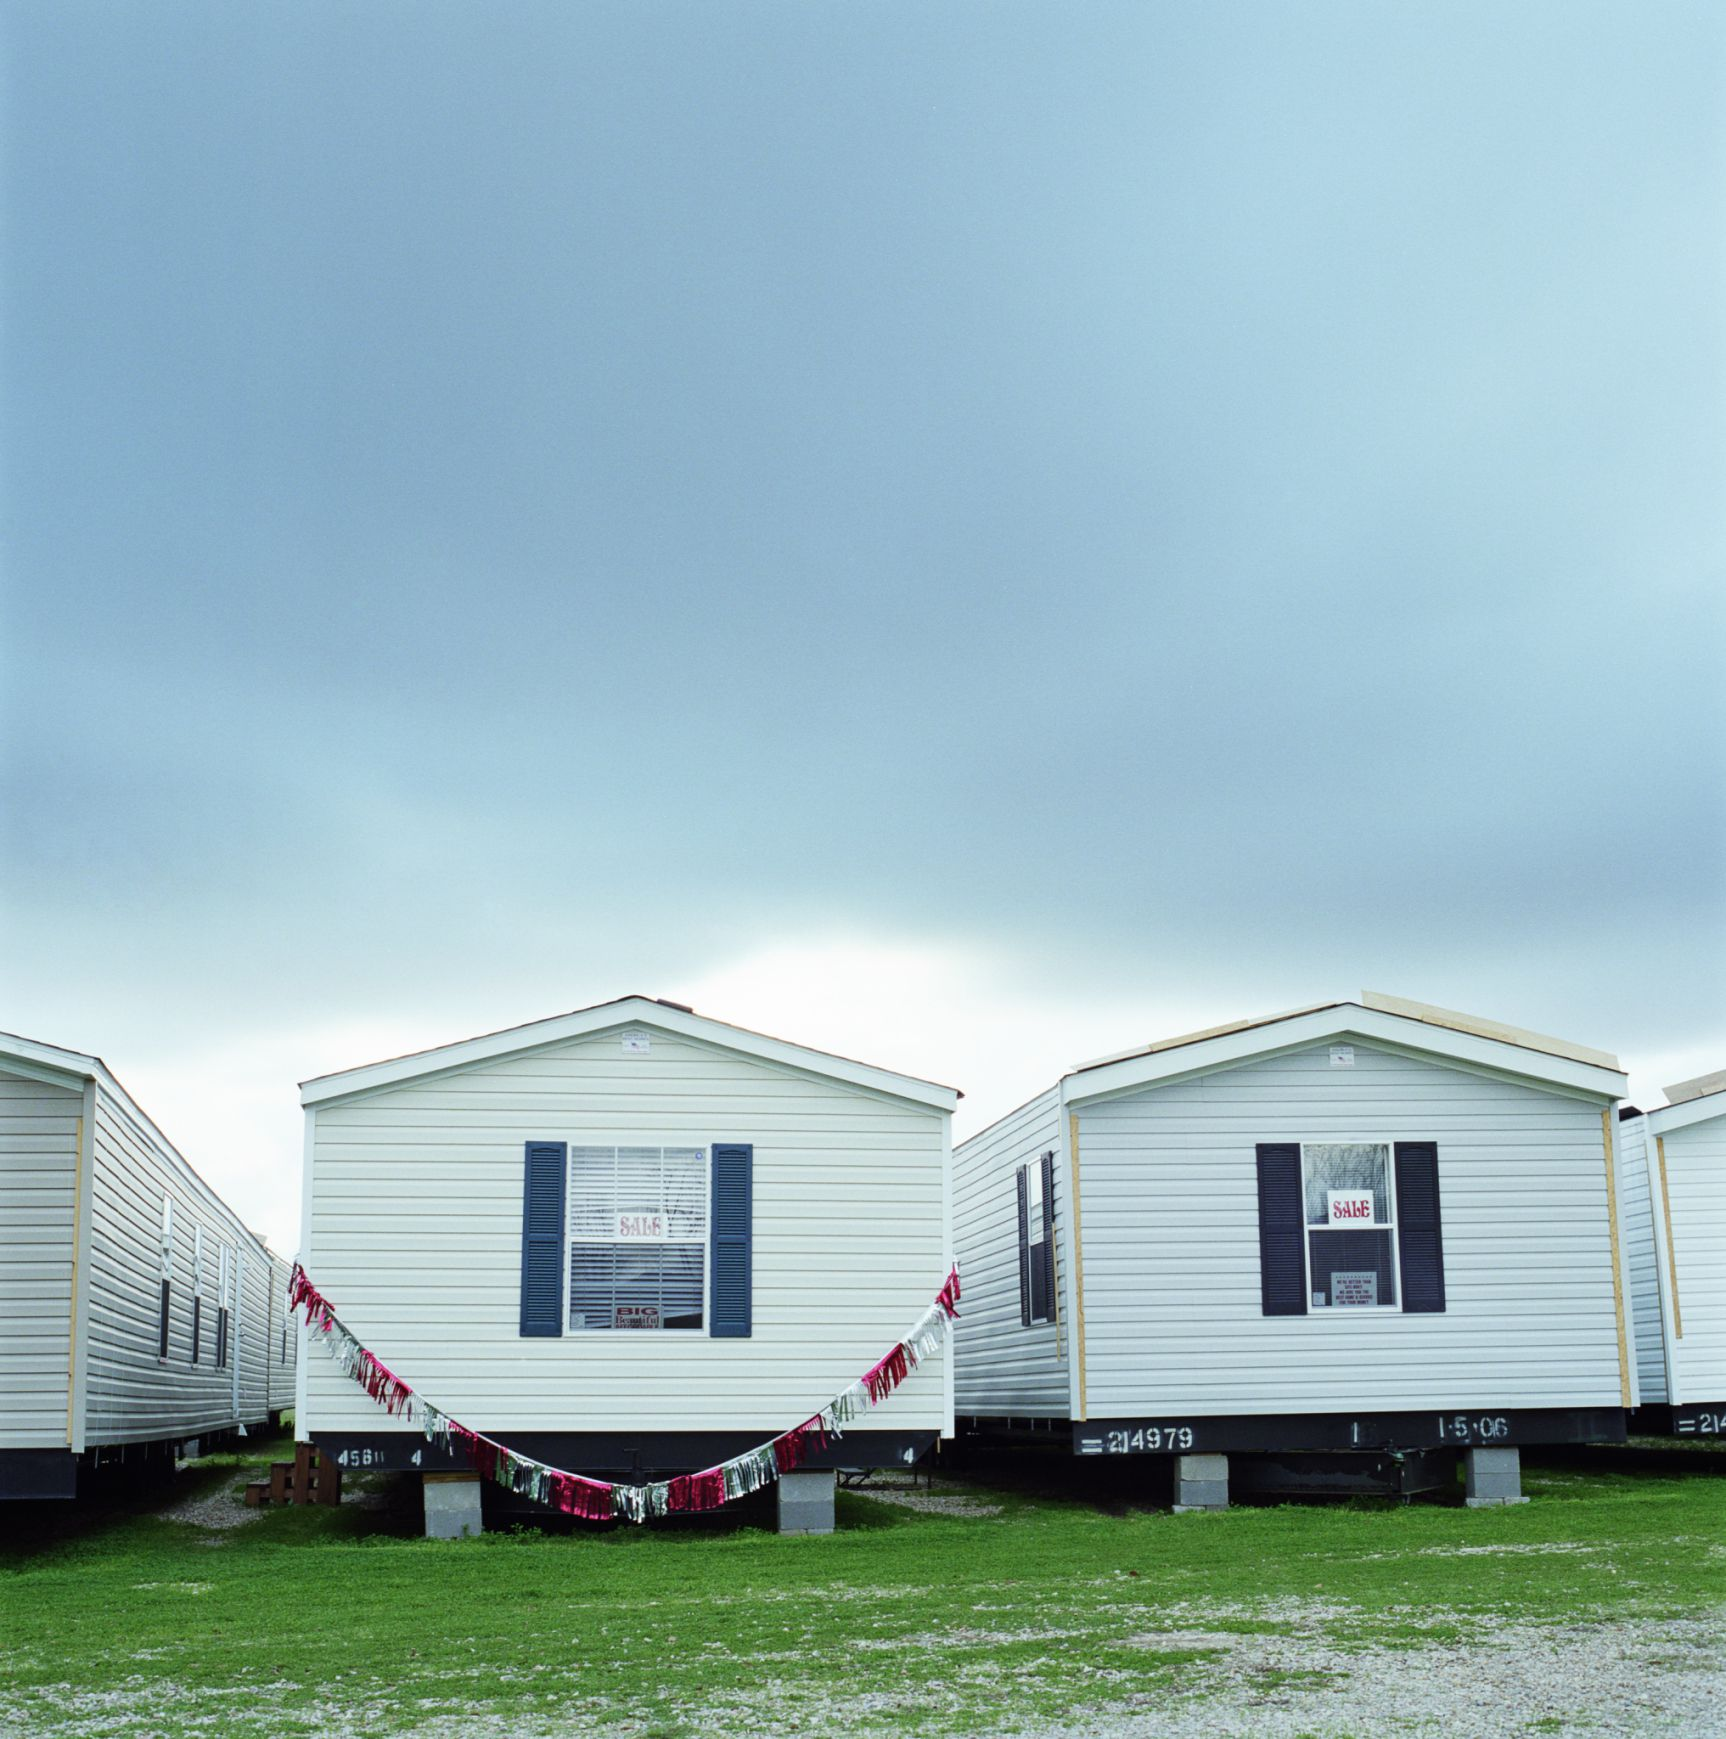 Best Home Upgrades: How To Choose The Best Upgrades For Manufactured Homes